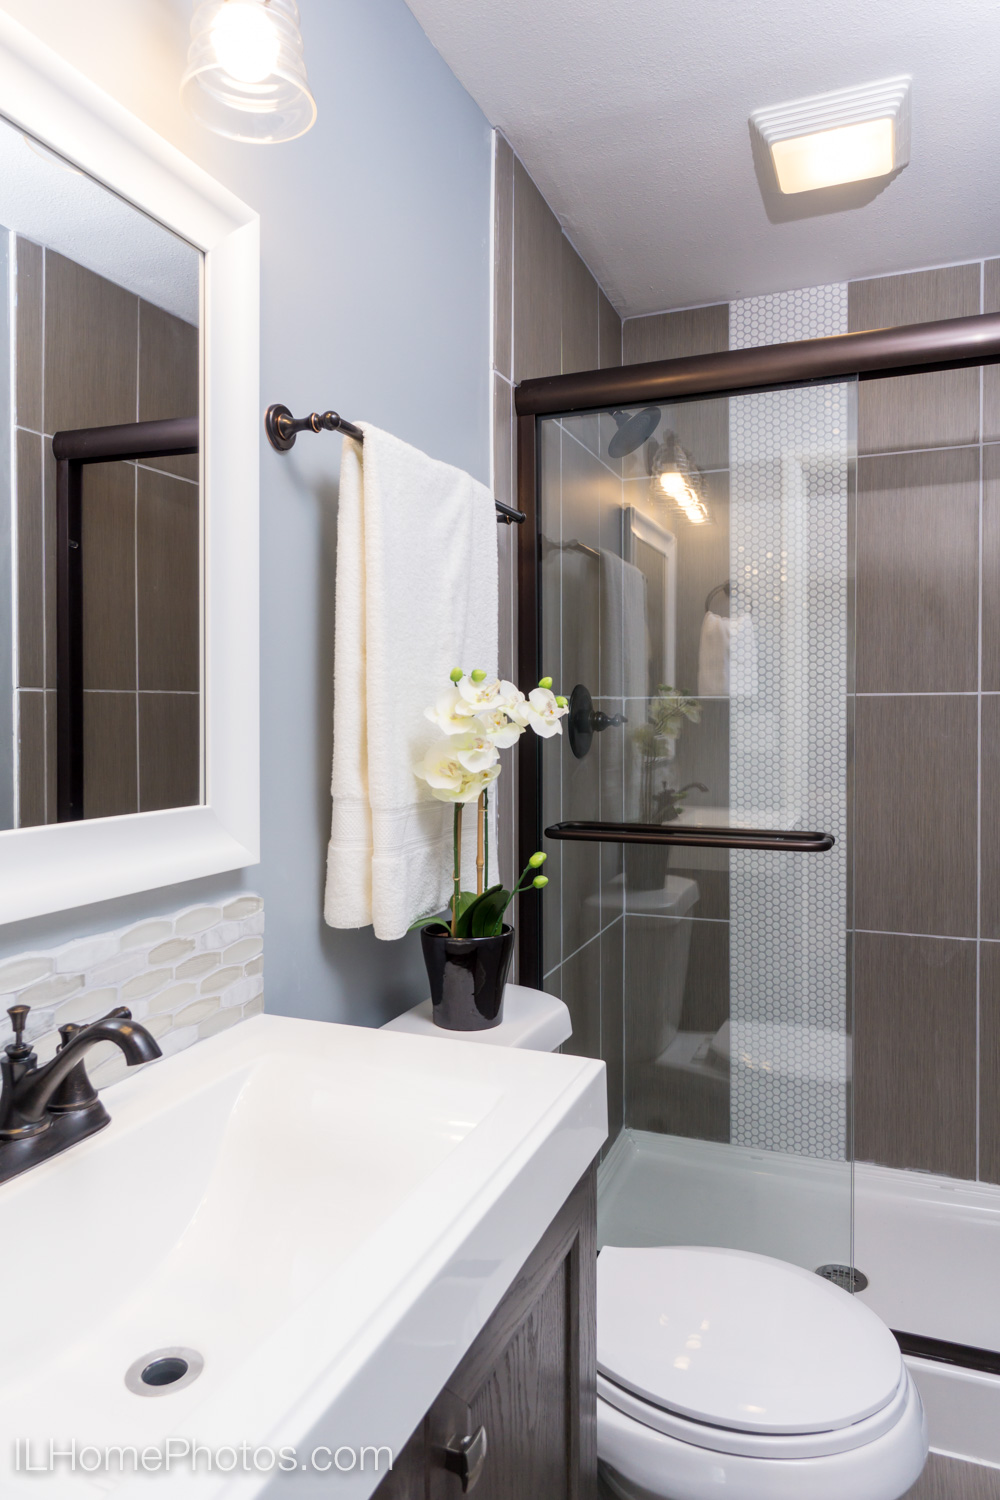 Interior bathroom photograph for real estate in Peoria, IL :: Illinois Home Photography by Michael Gowin, Lincoln, IL